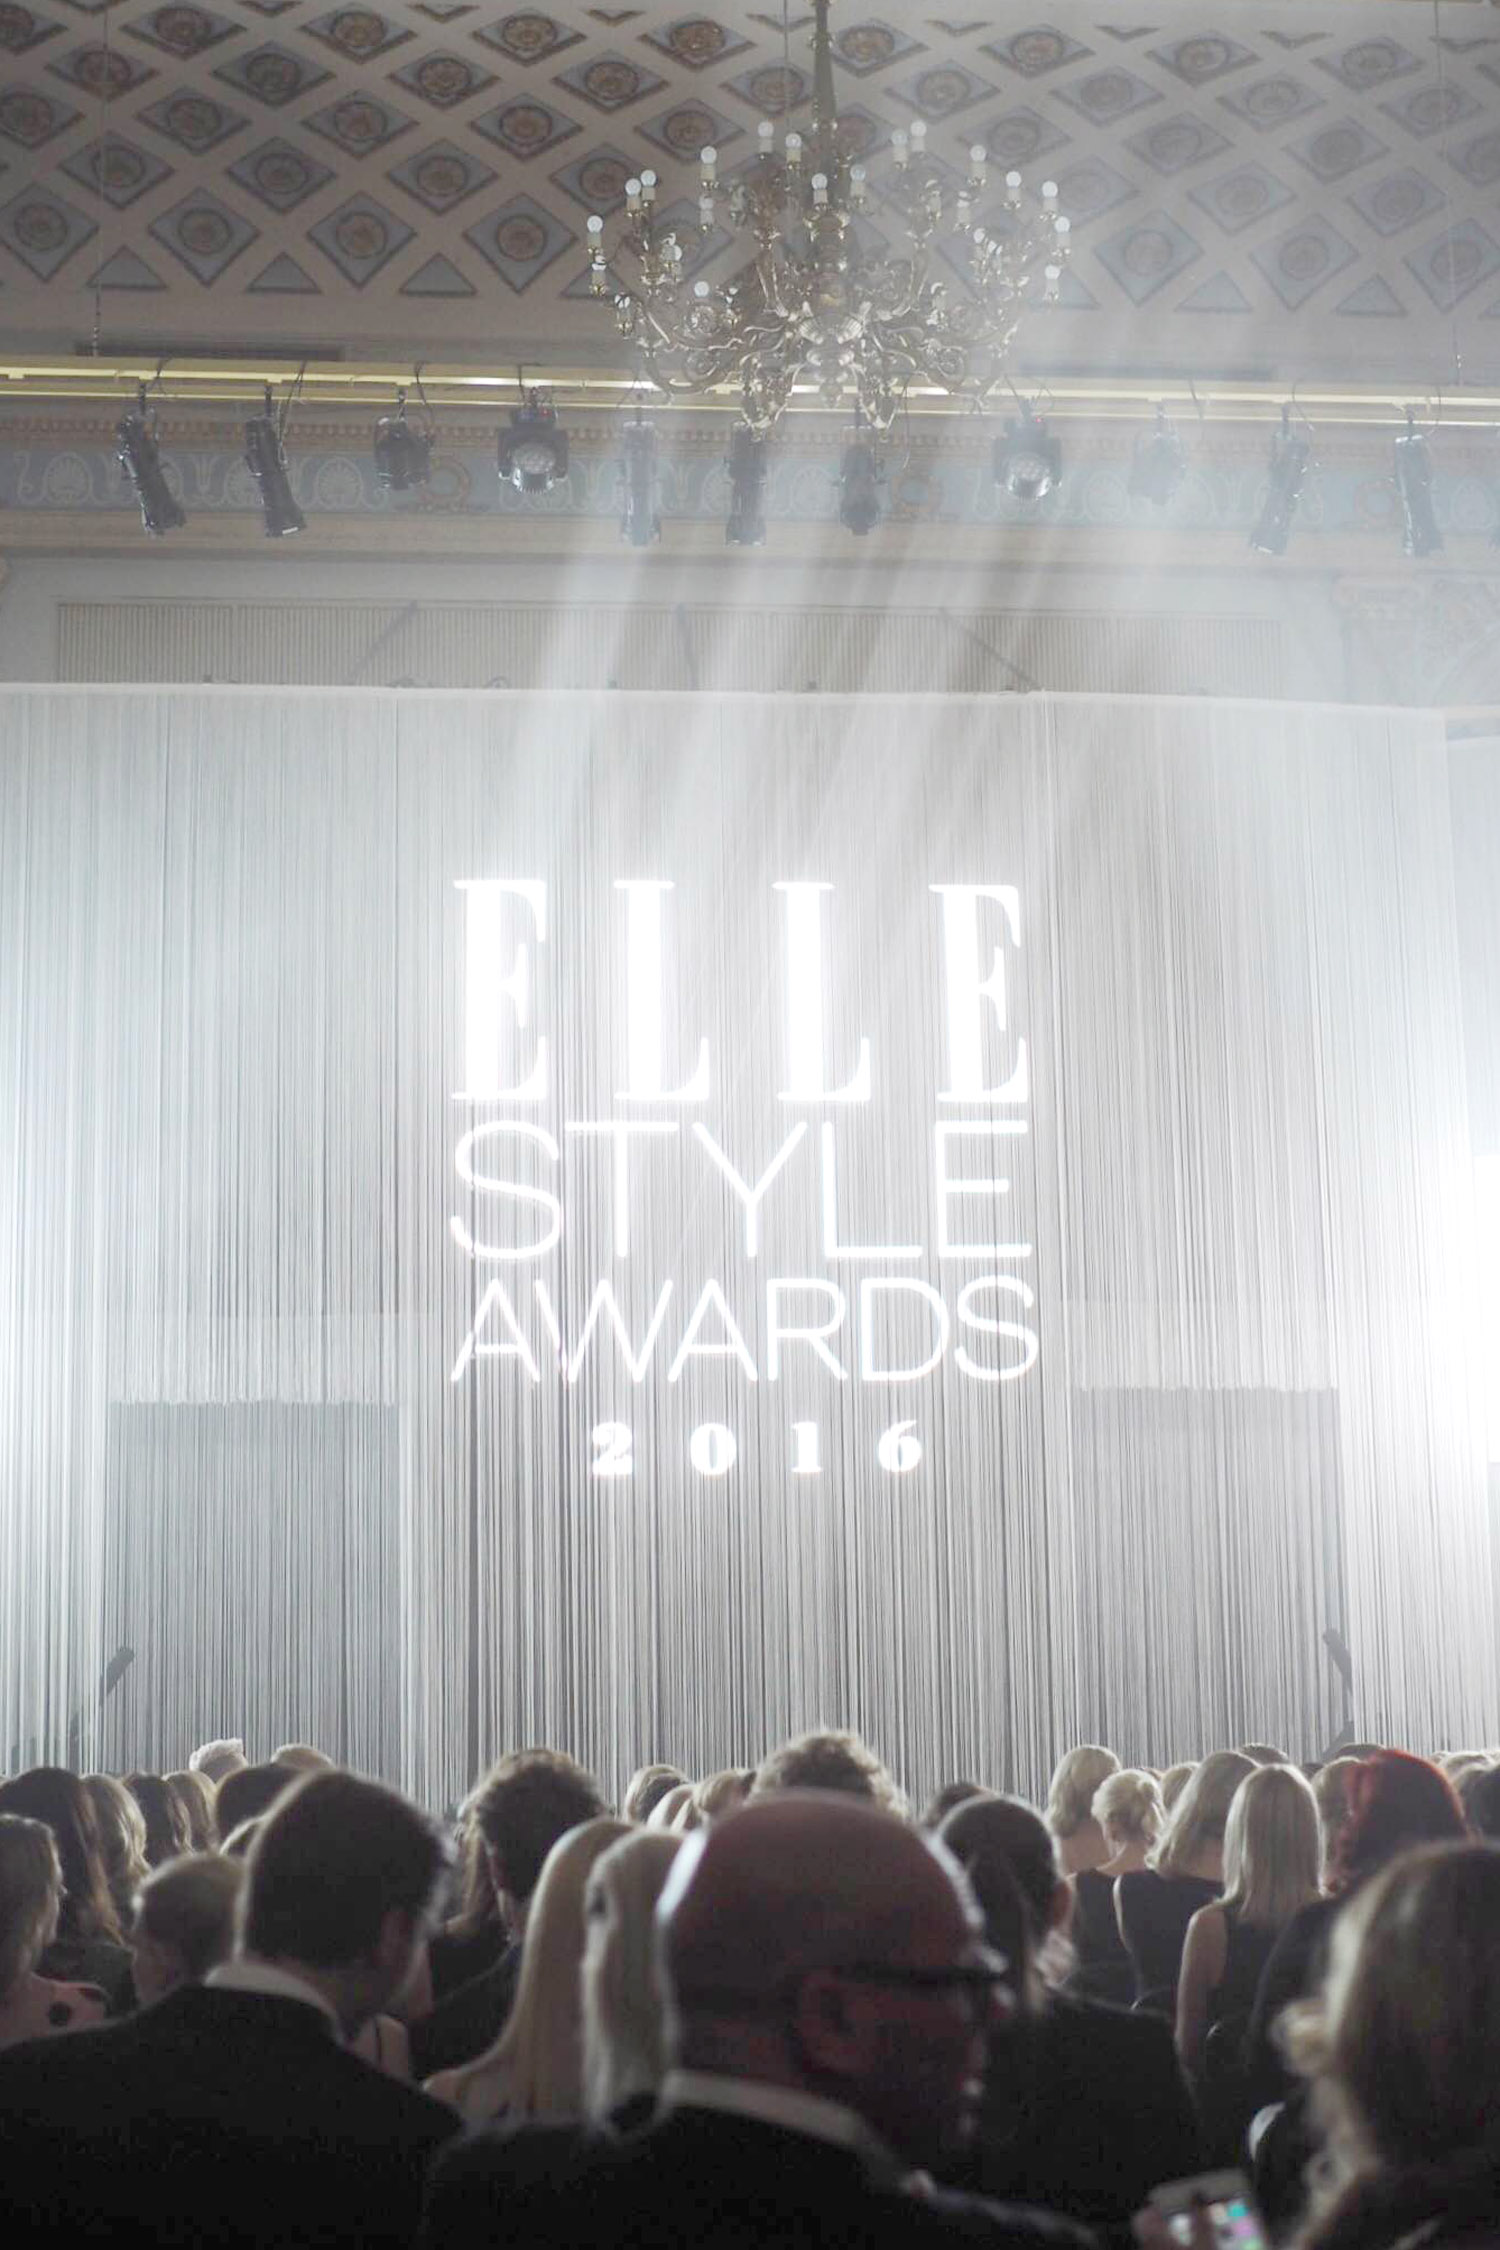 C and the city - ELLE Style Awards 2016 - read more on the blog: http://www.idealista.fi/charandthecity/2016/10/21/elle-style-awards-2016-kutsu